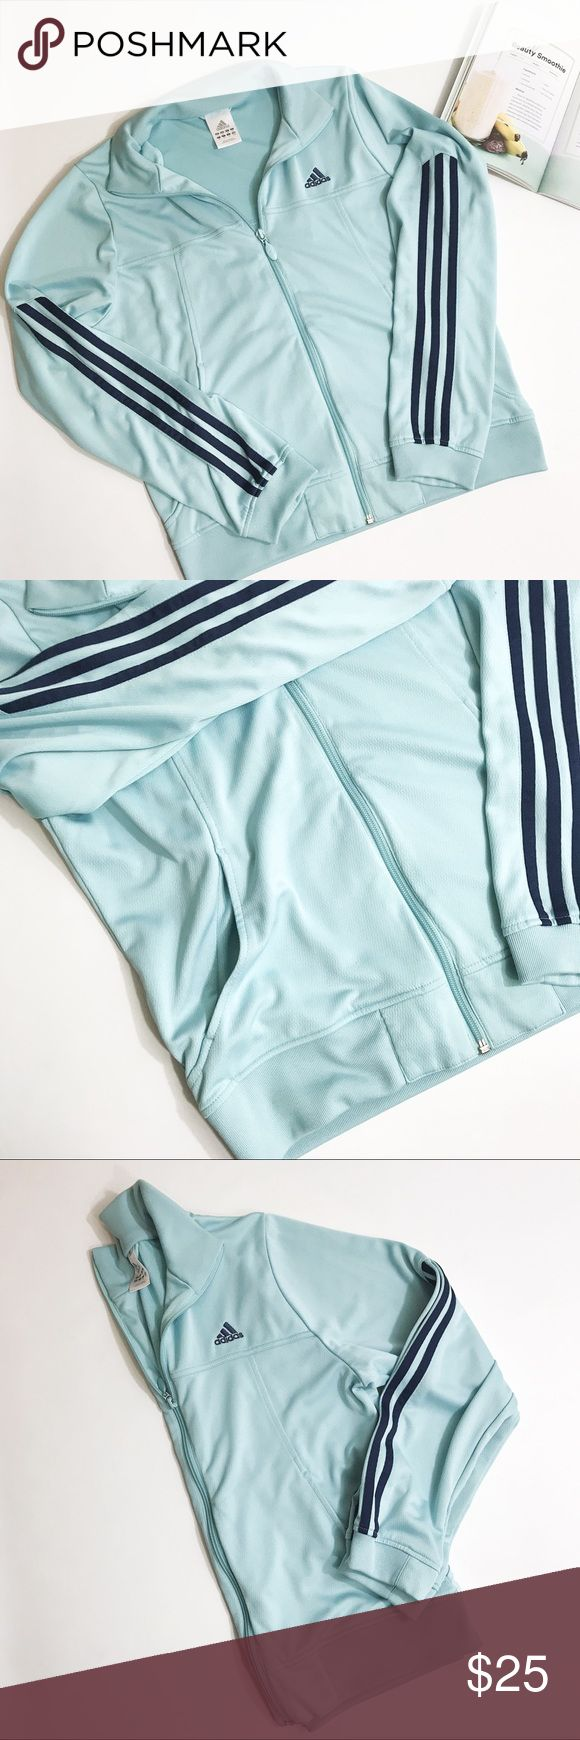 Adidas Blue Zip Up Jacket Adidas Blue Zip Up Jacket. Dark blue accents. Excellent condition. adidas Jackets & Coats